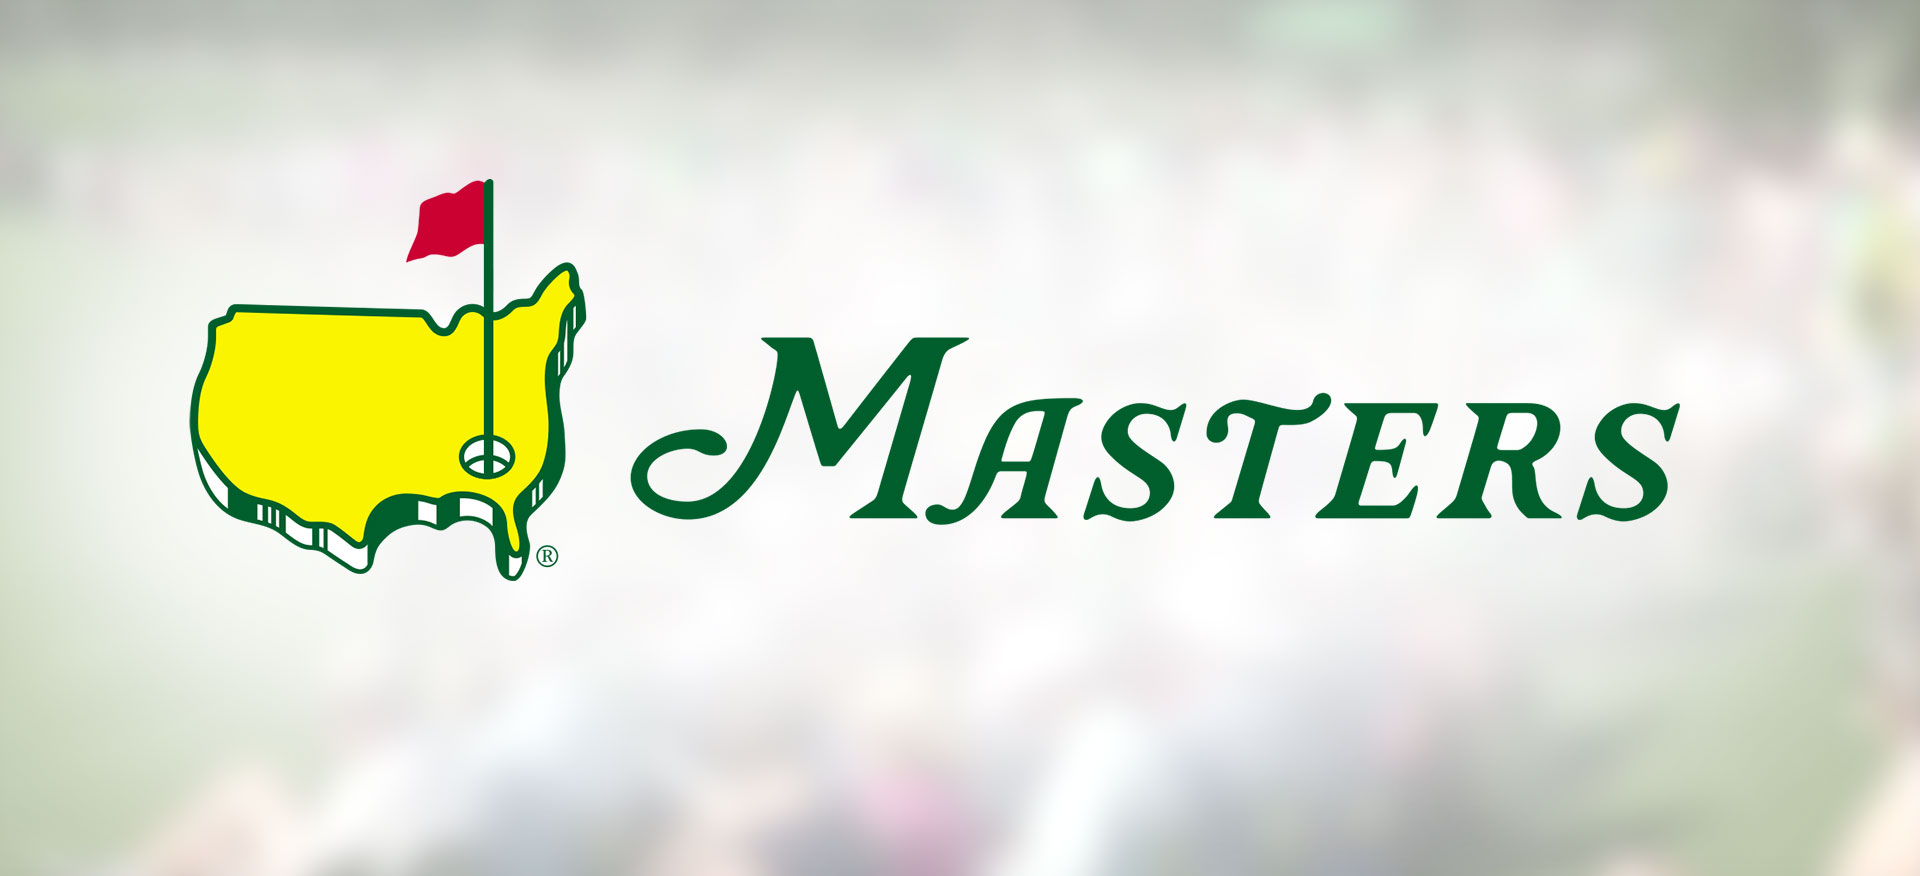 Masters Hype Unlike Any Other, Mainly Because Of Tiger Woods